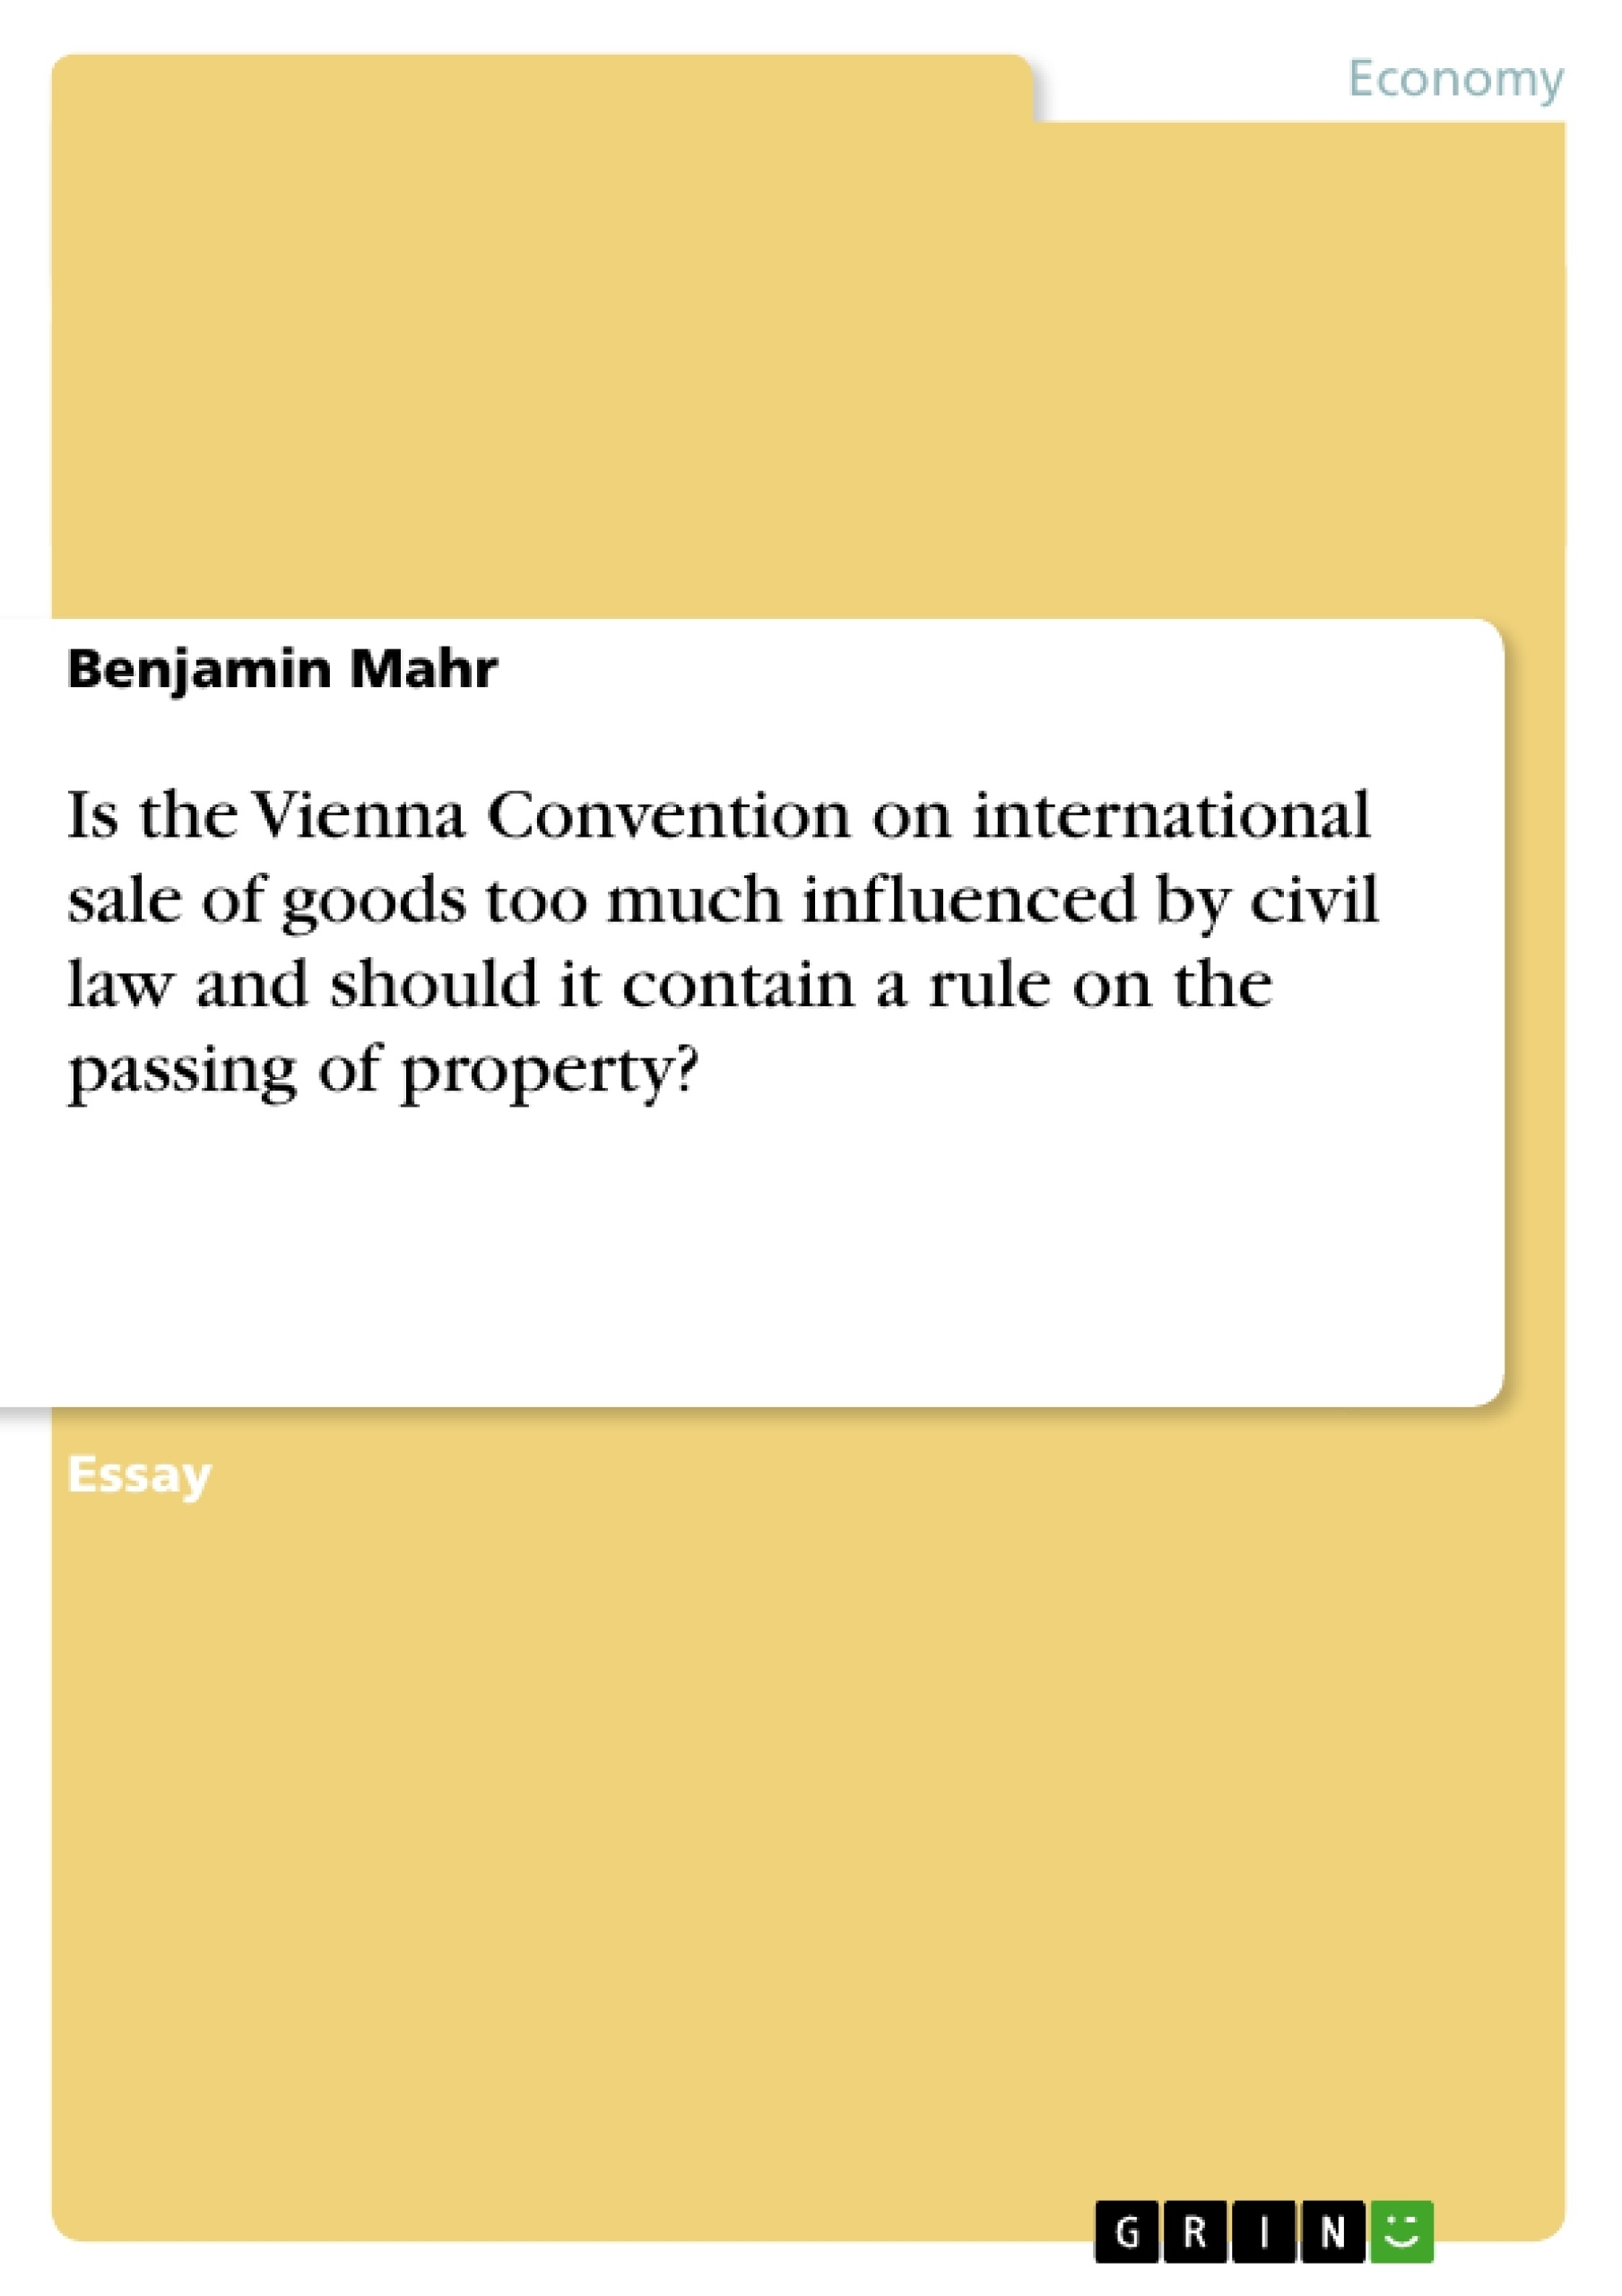 Title: Is the Vienna Convention on international sale of goods too much influenced by civil law and should it contain a rule on the passing of property?